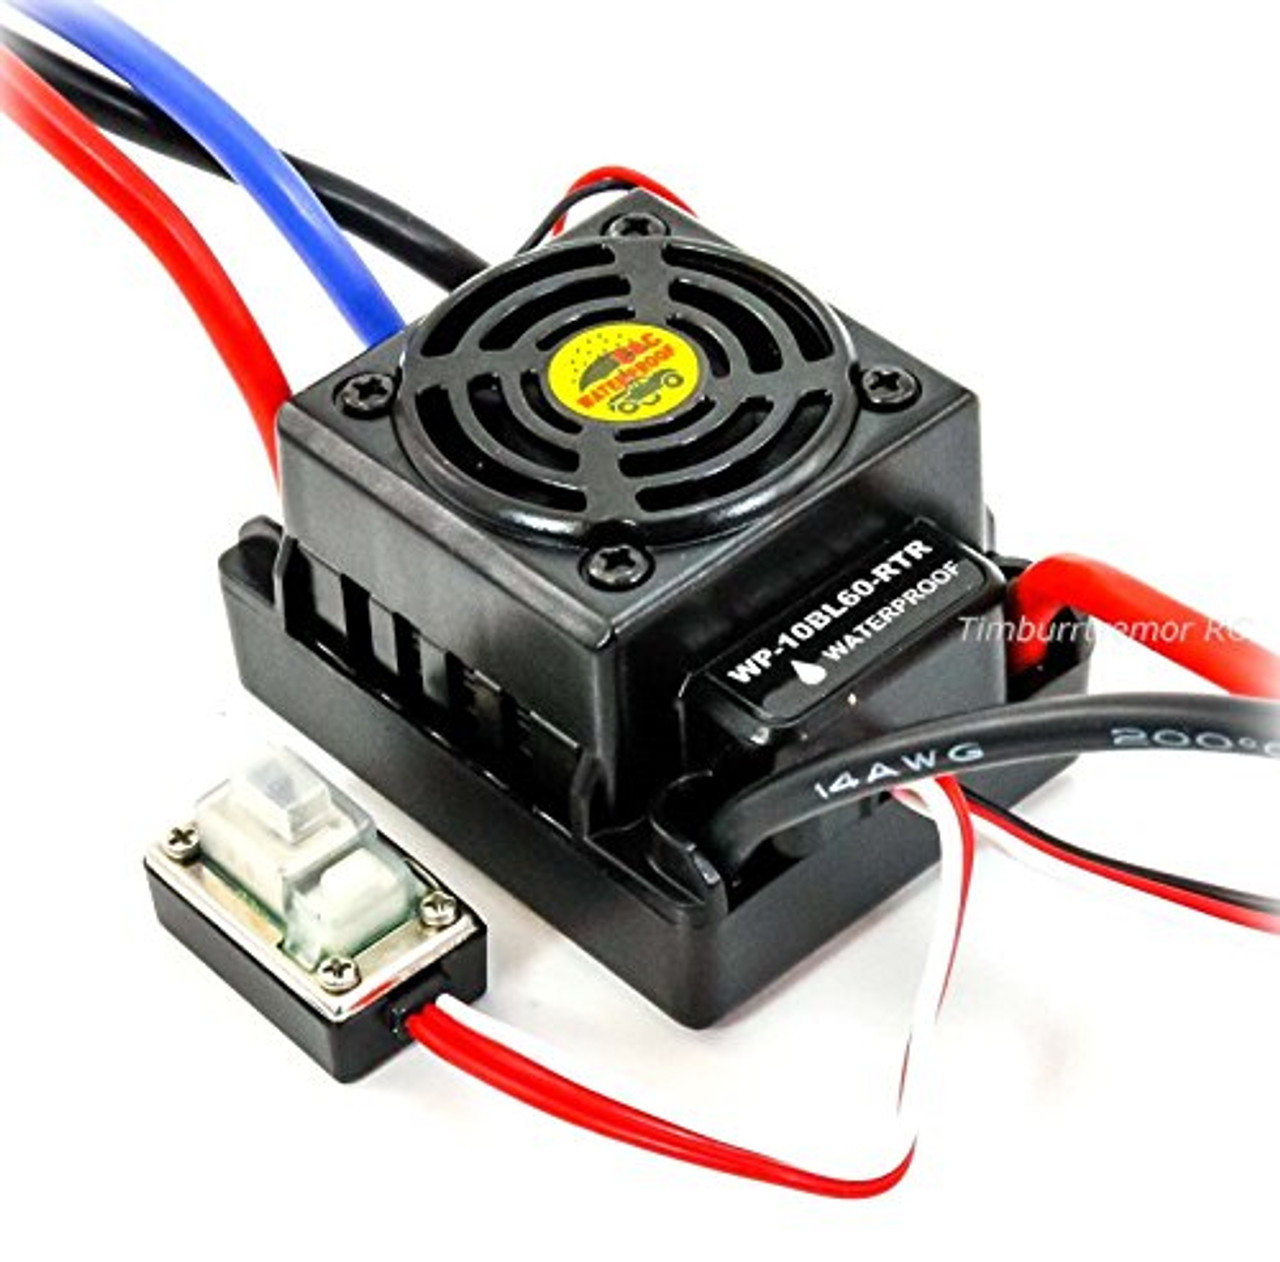 medium resolution of hobbywing 60a waterproof esc brushless for hsp bsd